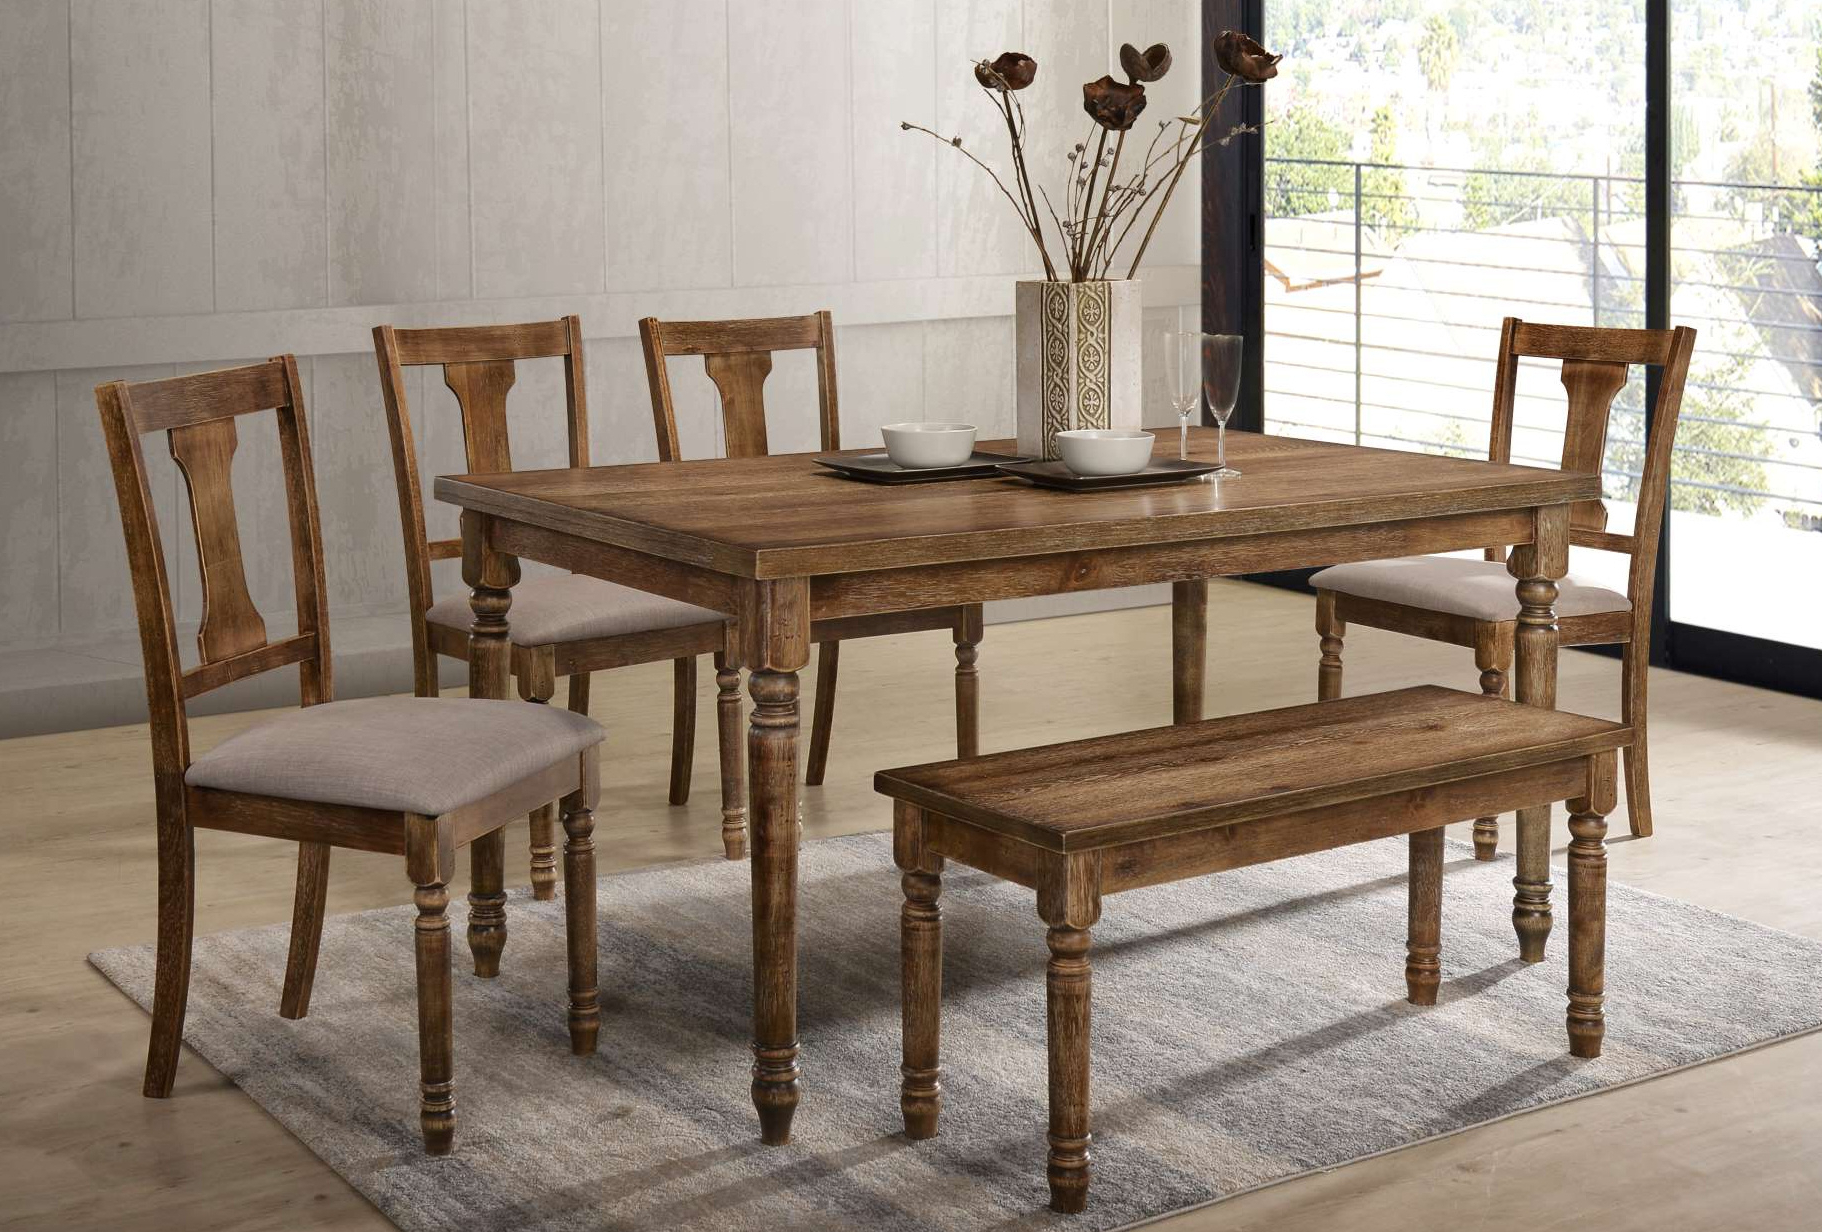 Charcoal Transitional 6 Seating Rectangular Dining Tables Pertaining To Trendy Furniture Clearance Center (View 9 of 25)